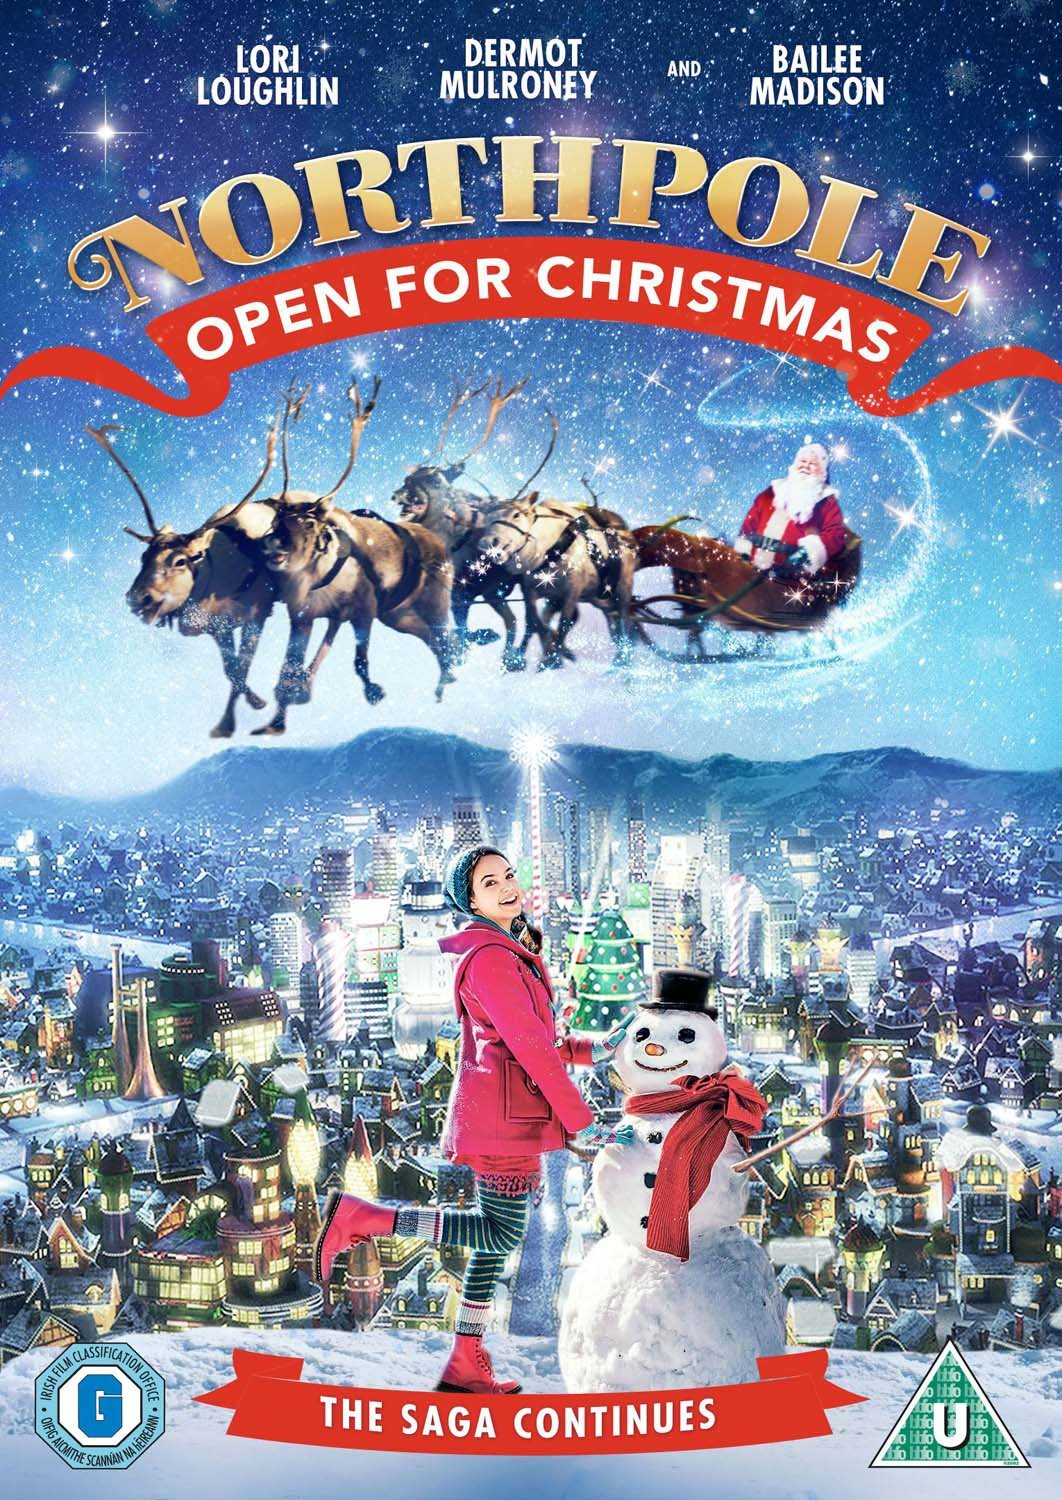 Northpole: Open For Christmas [DVD]: Amazon.co.uk: Lori Loughlin ...